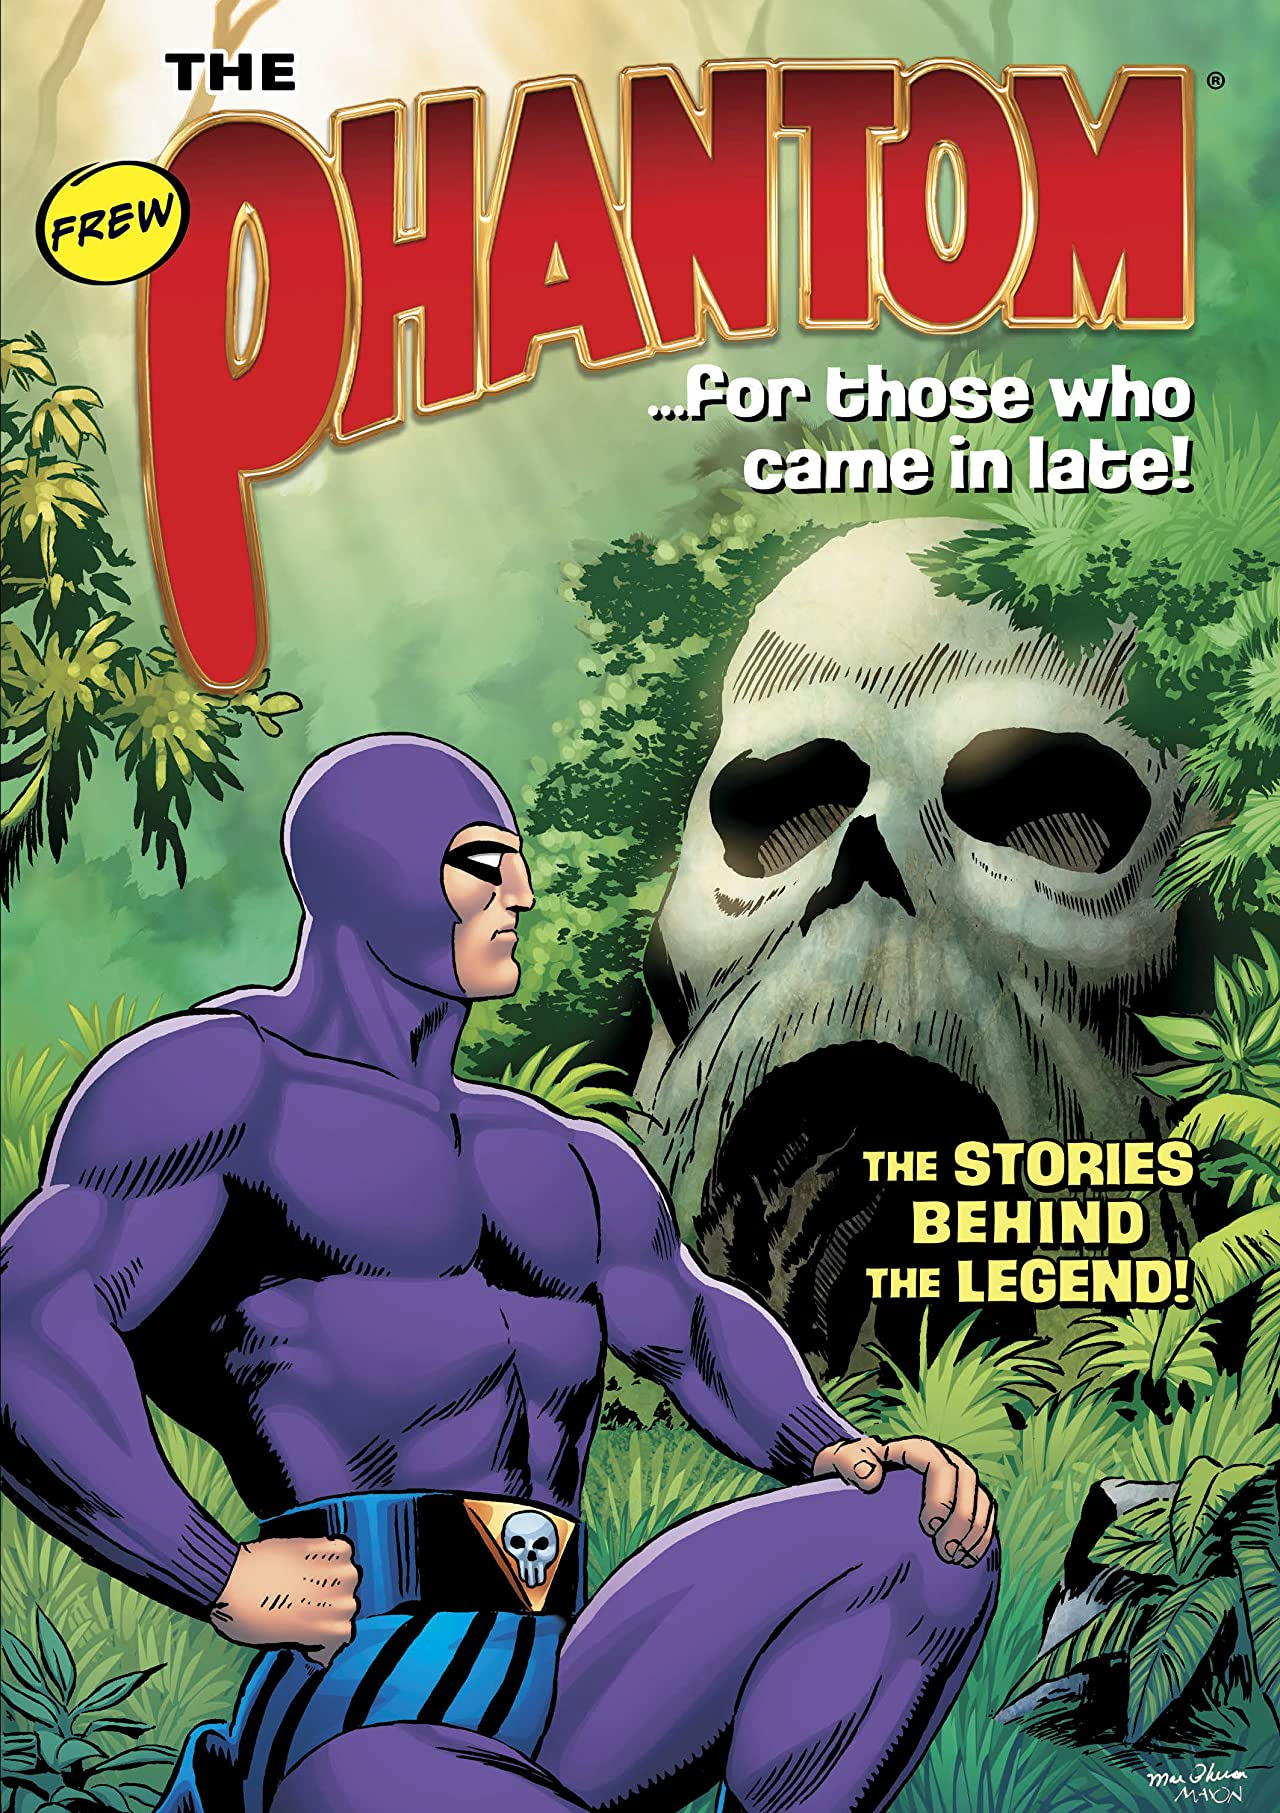 The Phantom Trade Paperback #01